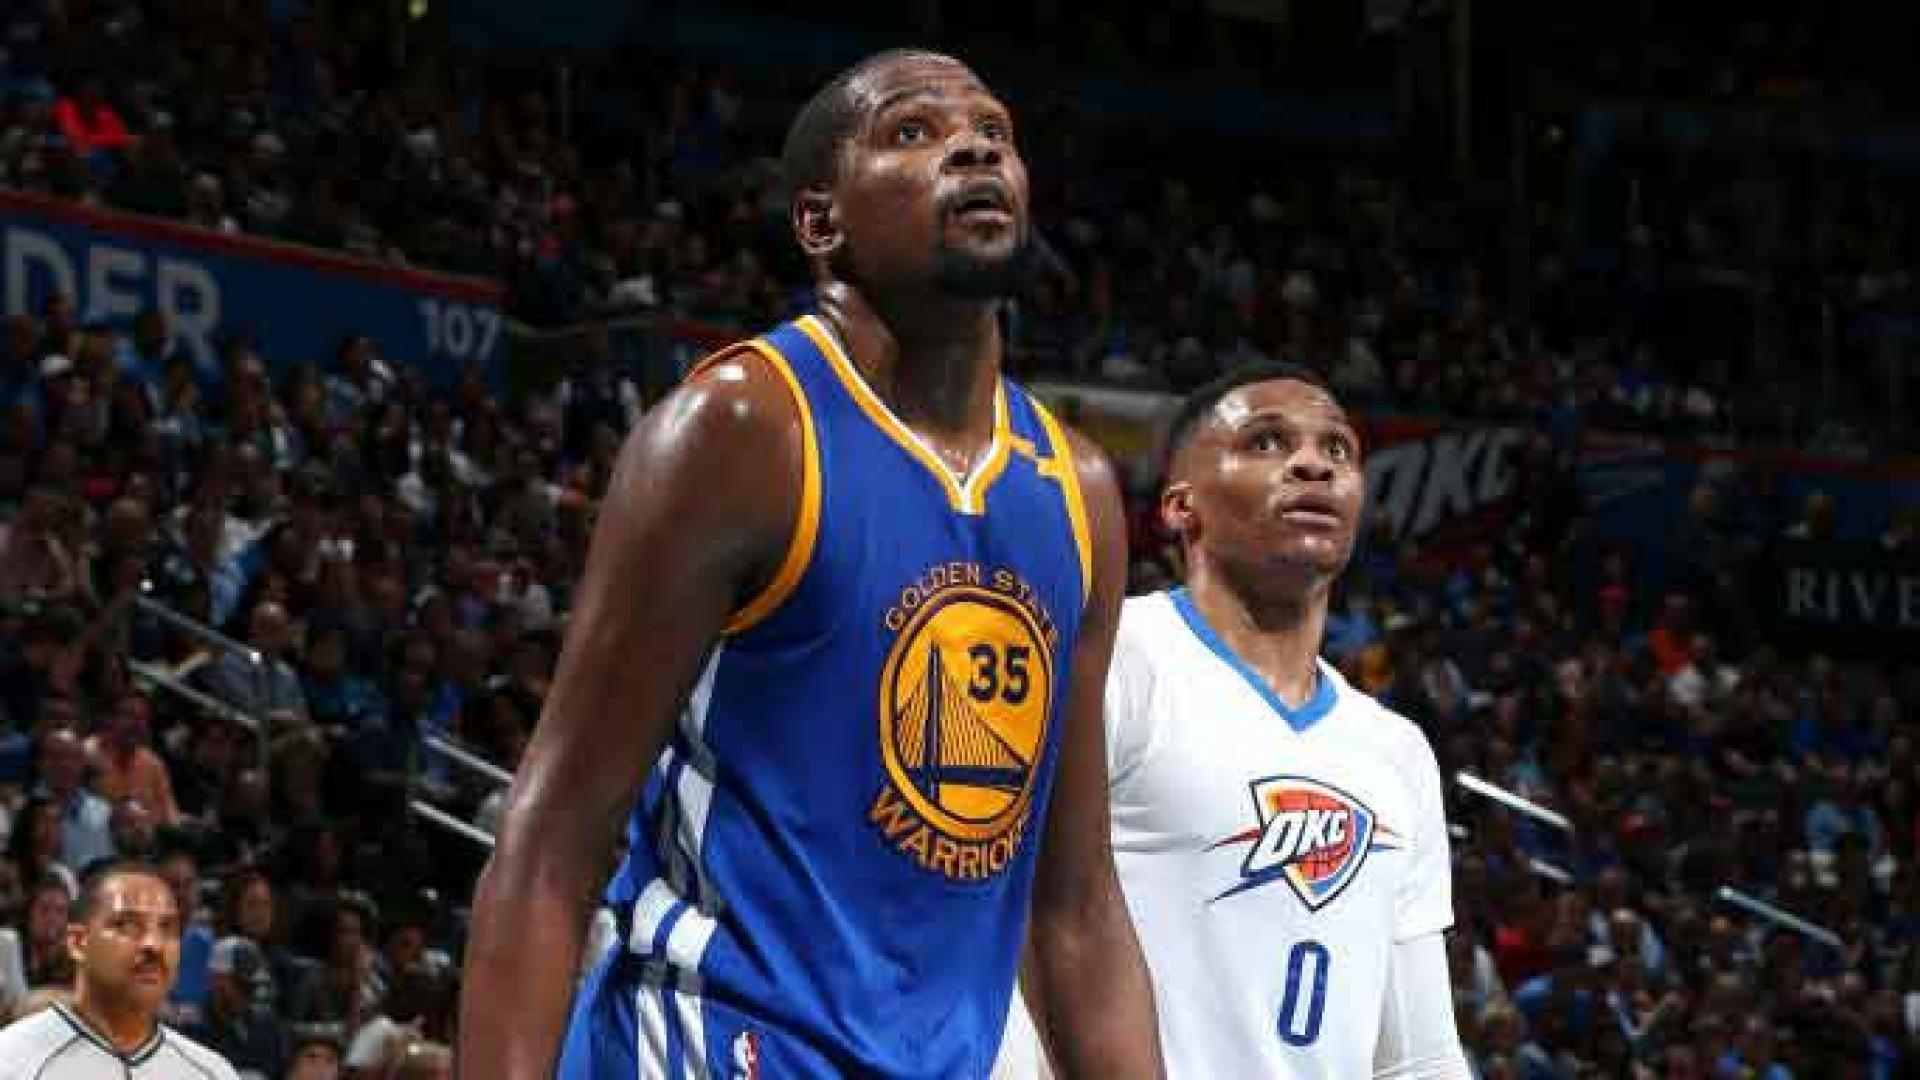 Kevin Durant, who sprained his ankle Saturday, is questionable against Thunder